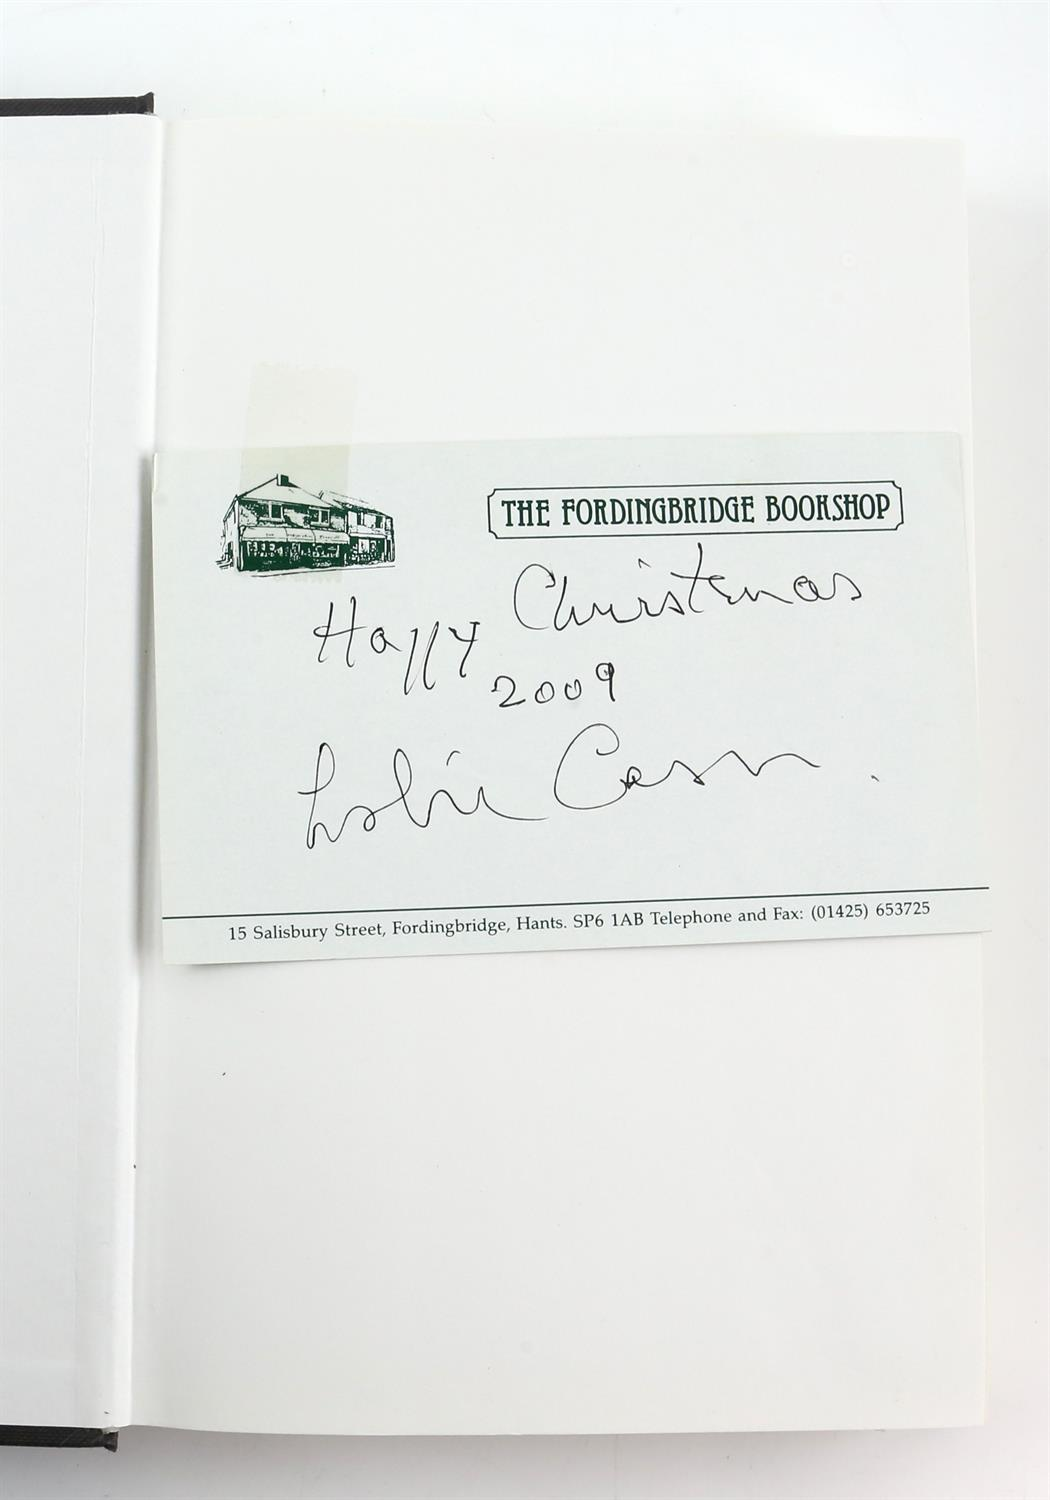 9 autographed books signed by Lauren Bacall, Richard Todd, Michael Palin, Leslie Caron, - Image 5 of 10